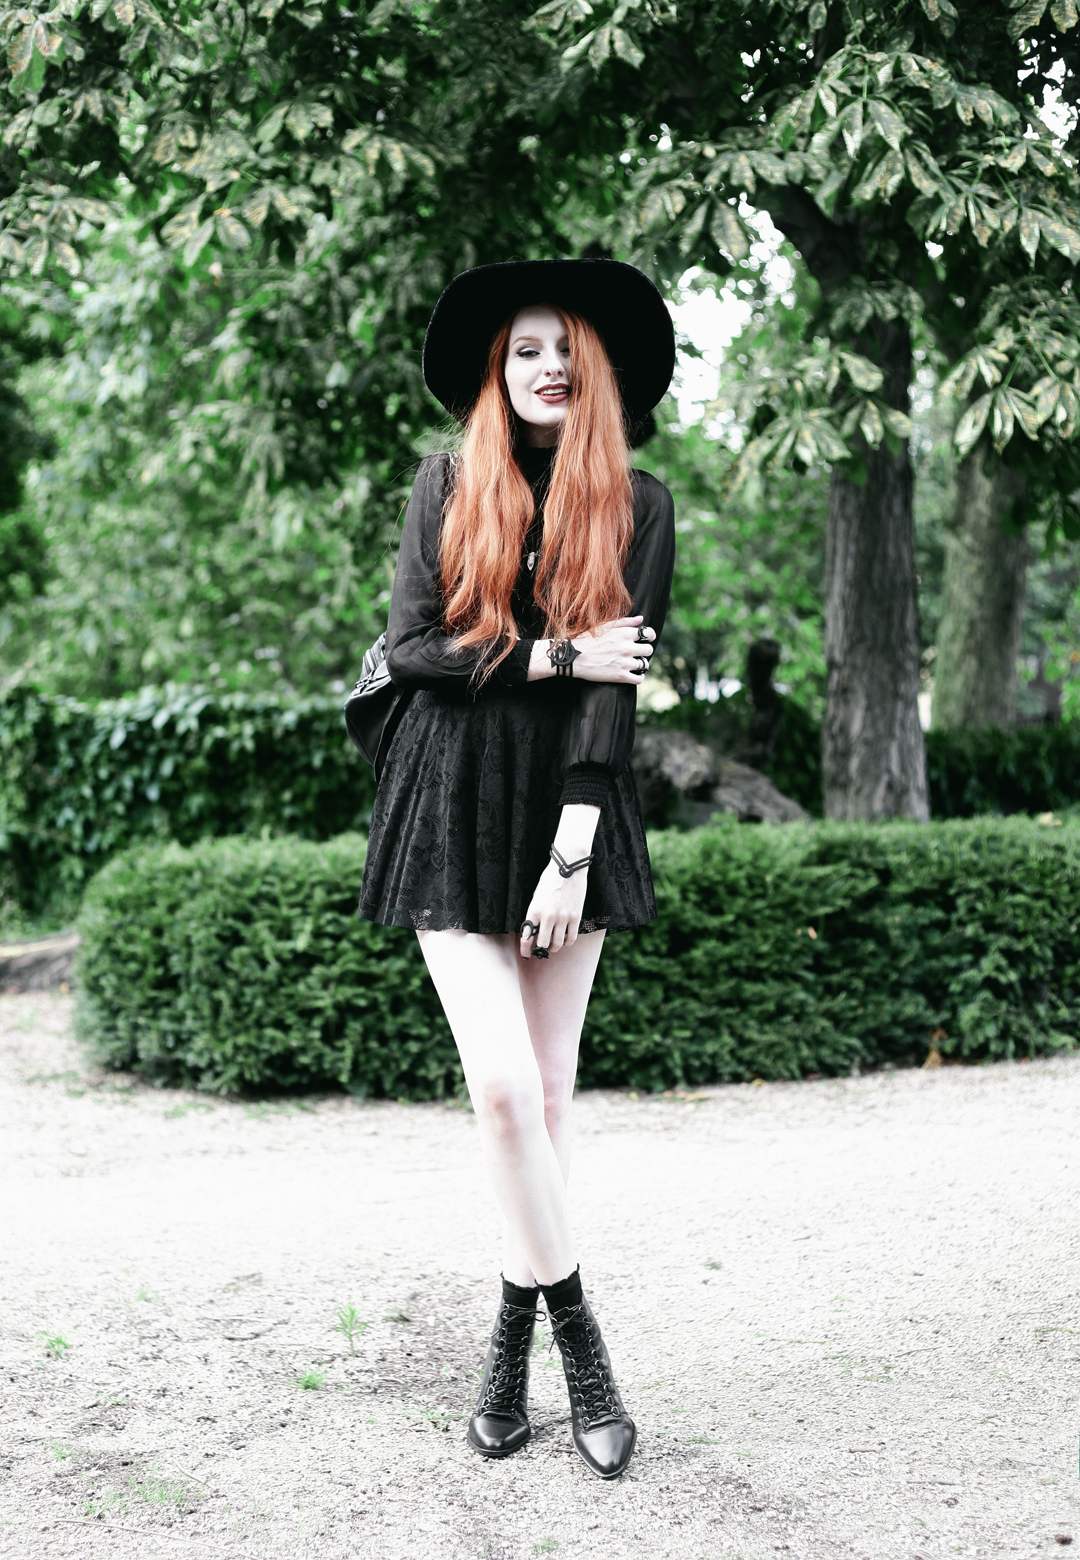 Olivia Emily wears Asos Sheer Shirt, Black Milk Black Lace Skater Dress, Killstar Velvet Witch Brim Hat, Zana Bayne Cincher Waist Belt, and Asos Ariana Lace Up Boots